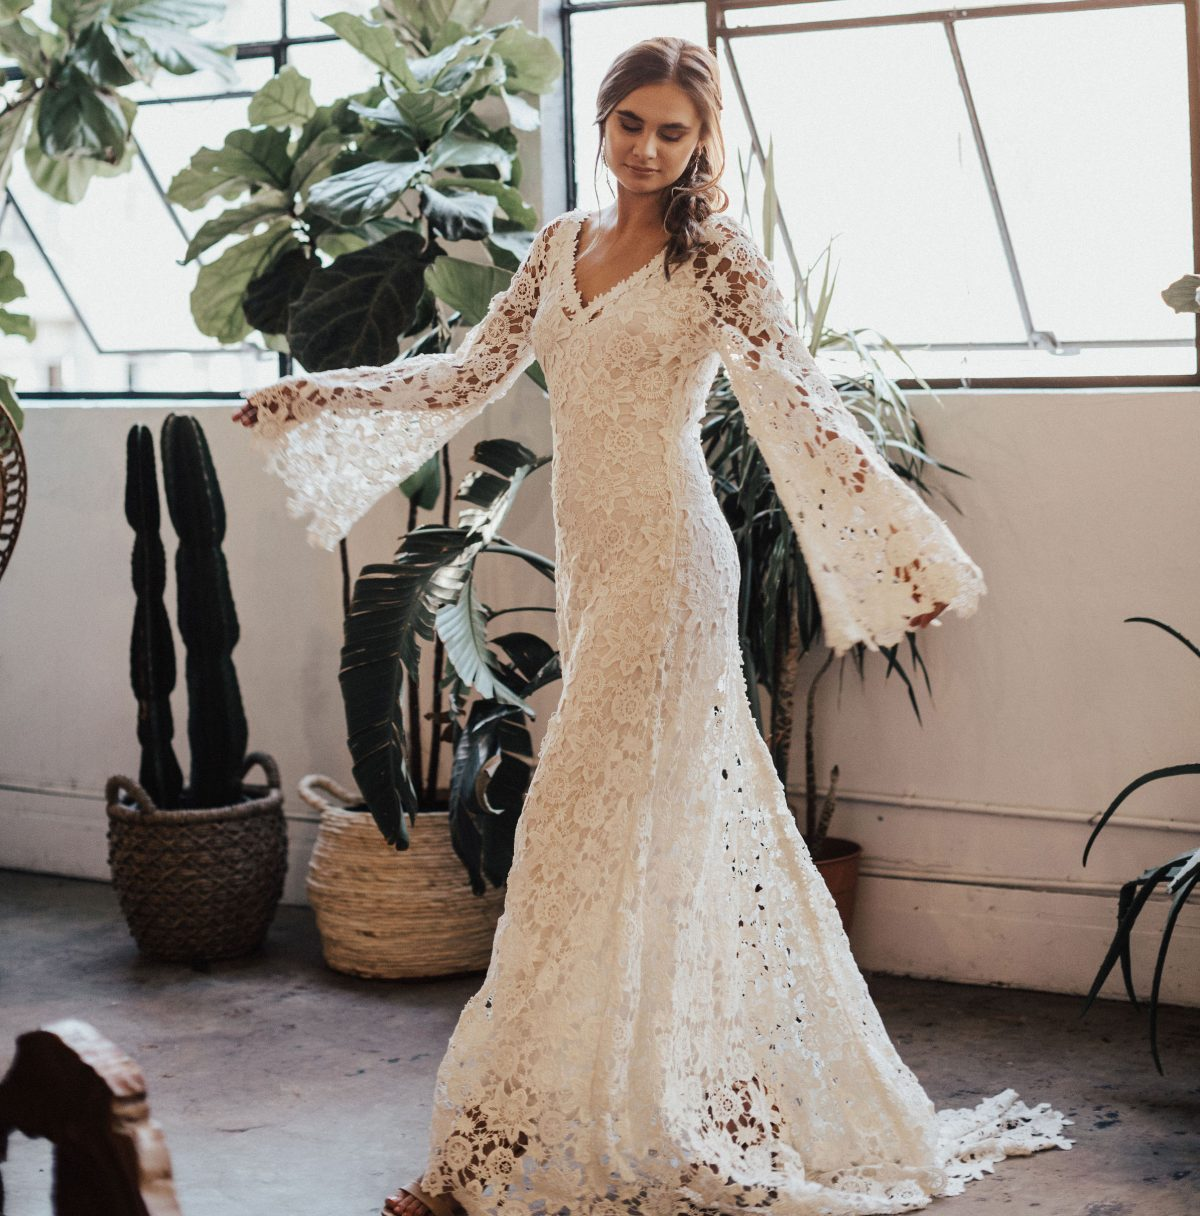 Wedding Dresess: Arabelle Boho Crocheted Wedding Dress